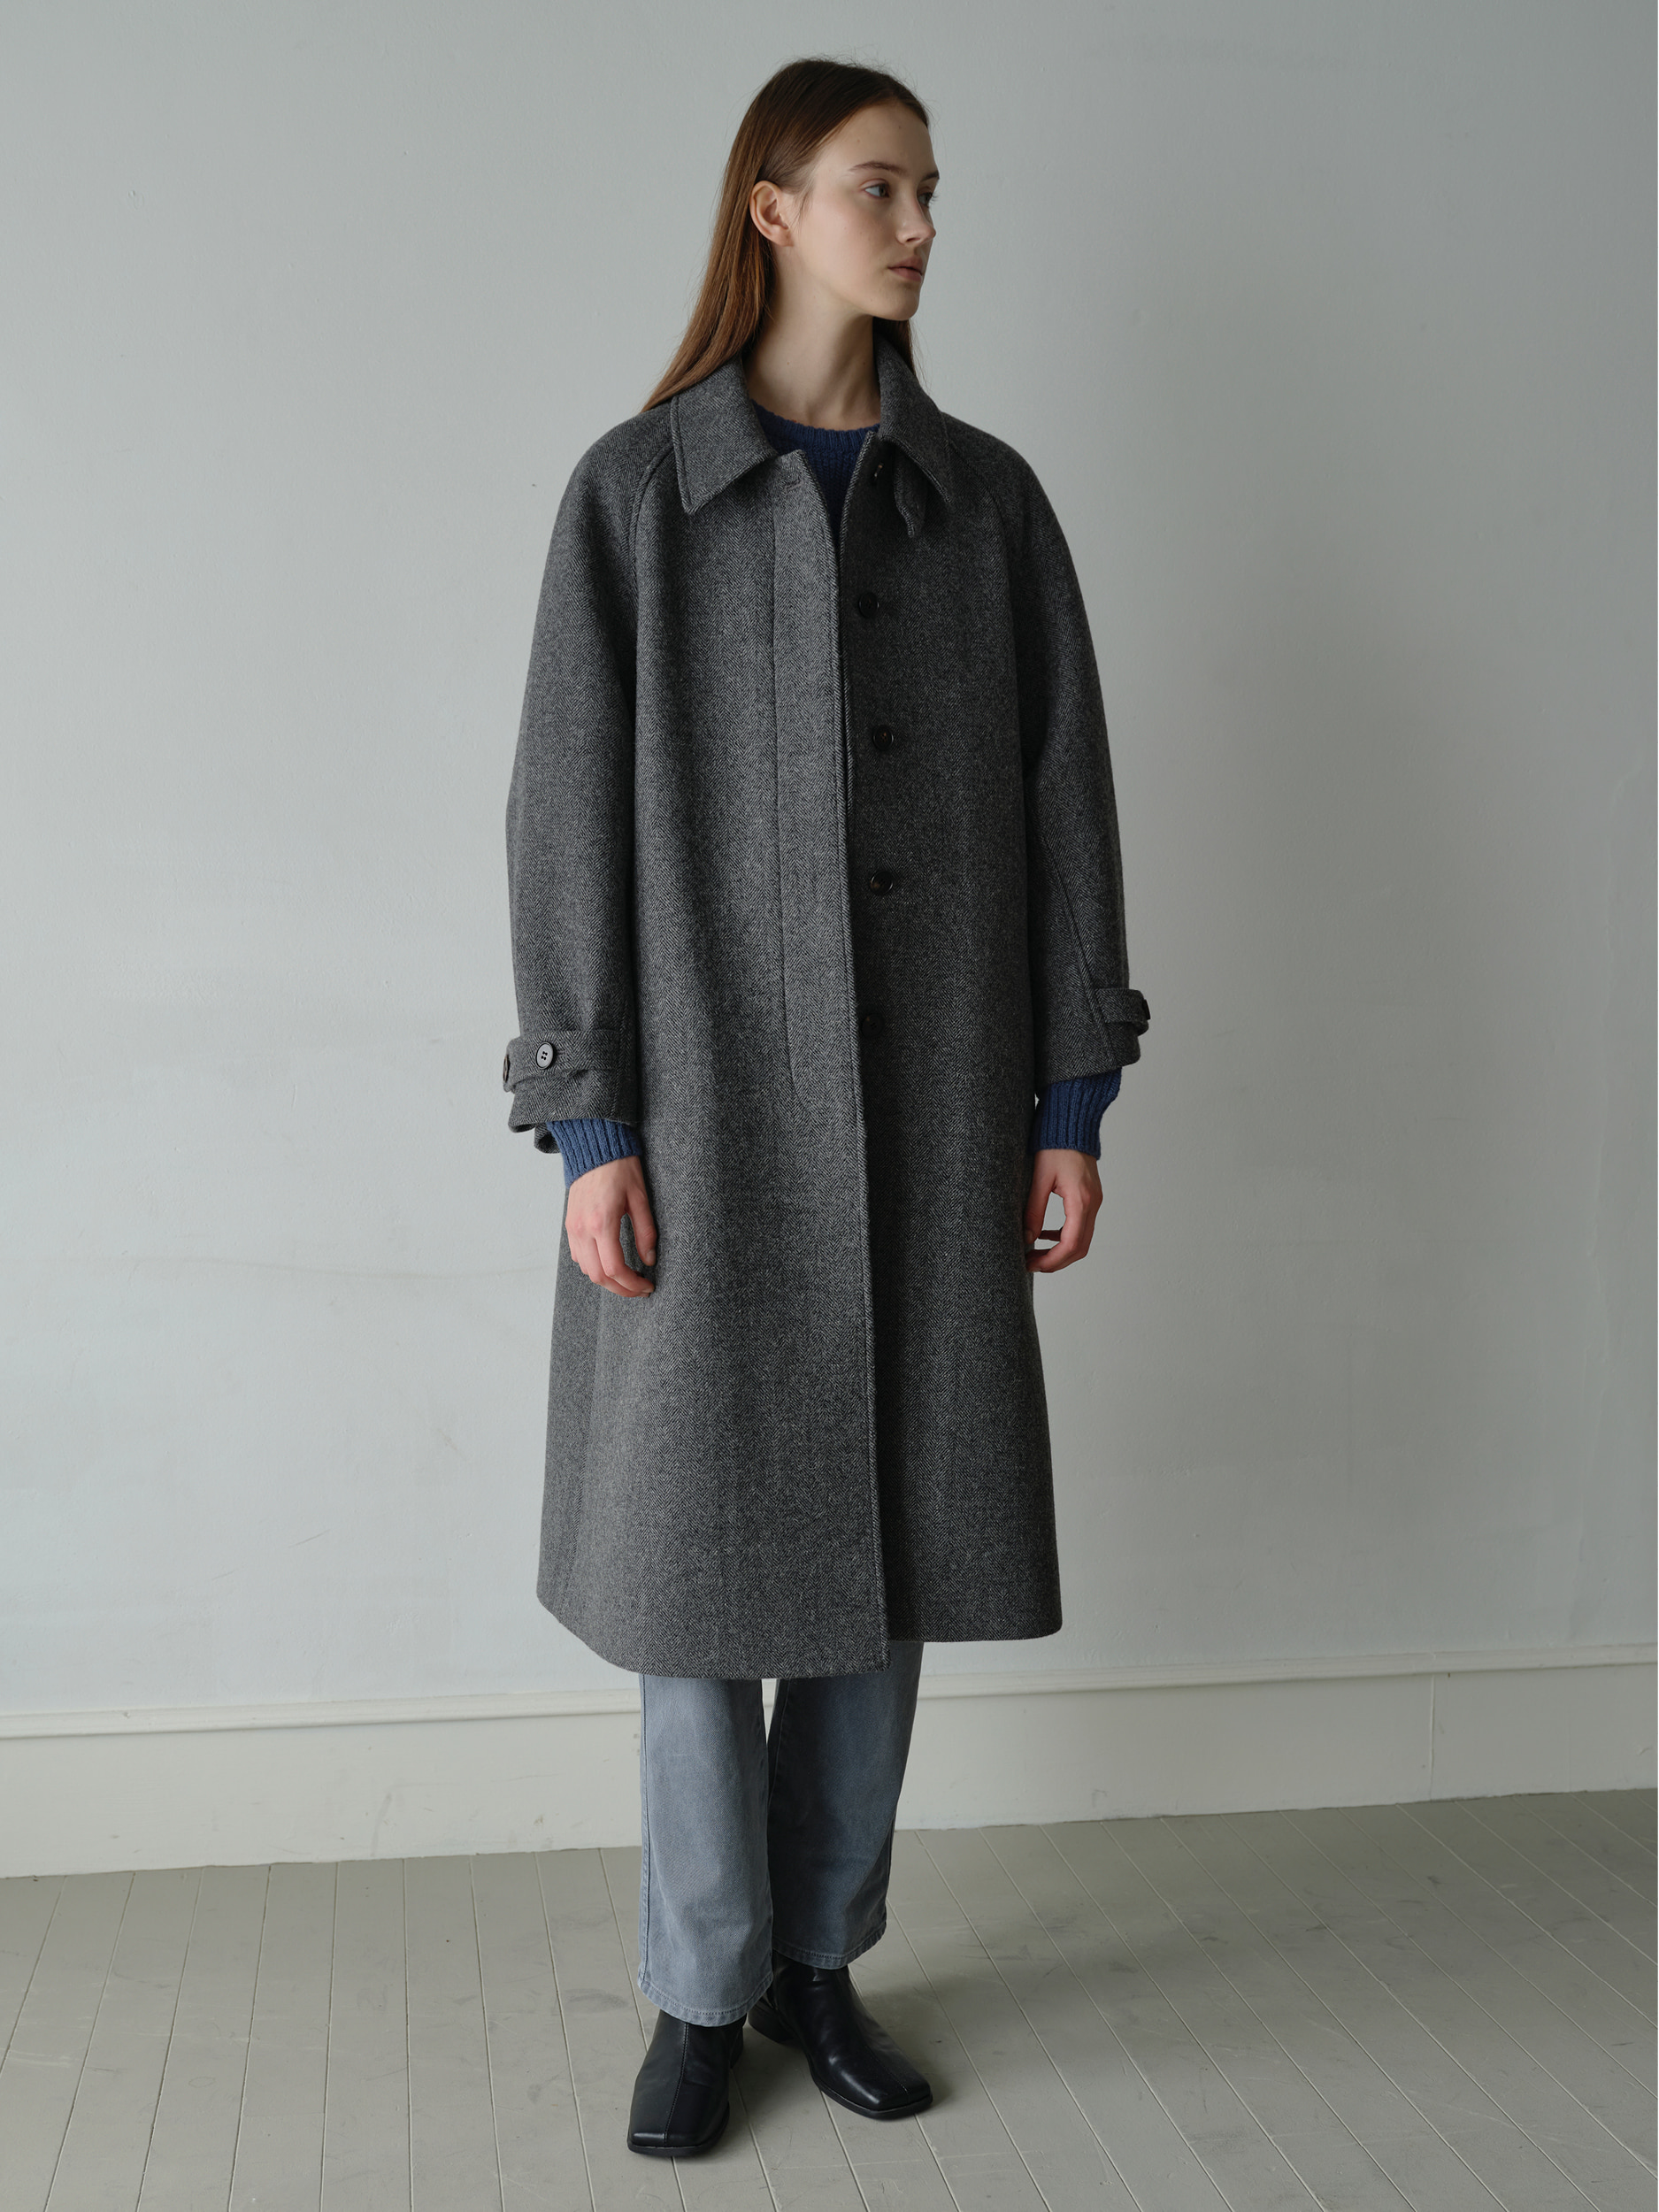 balmacaan coat  (herringbone gray)